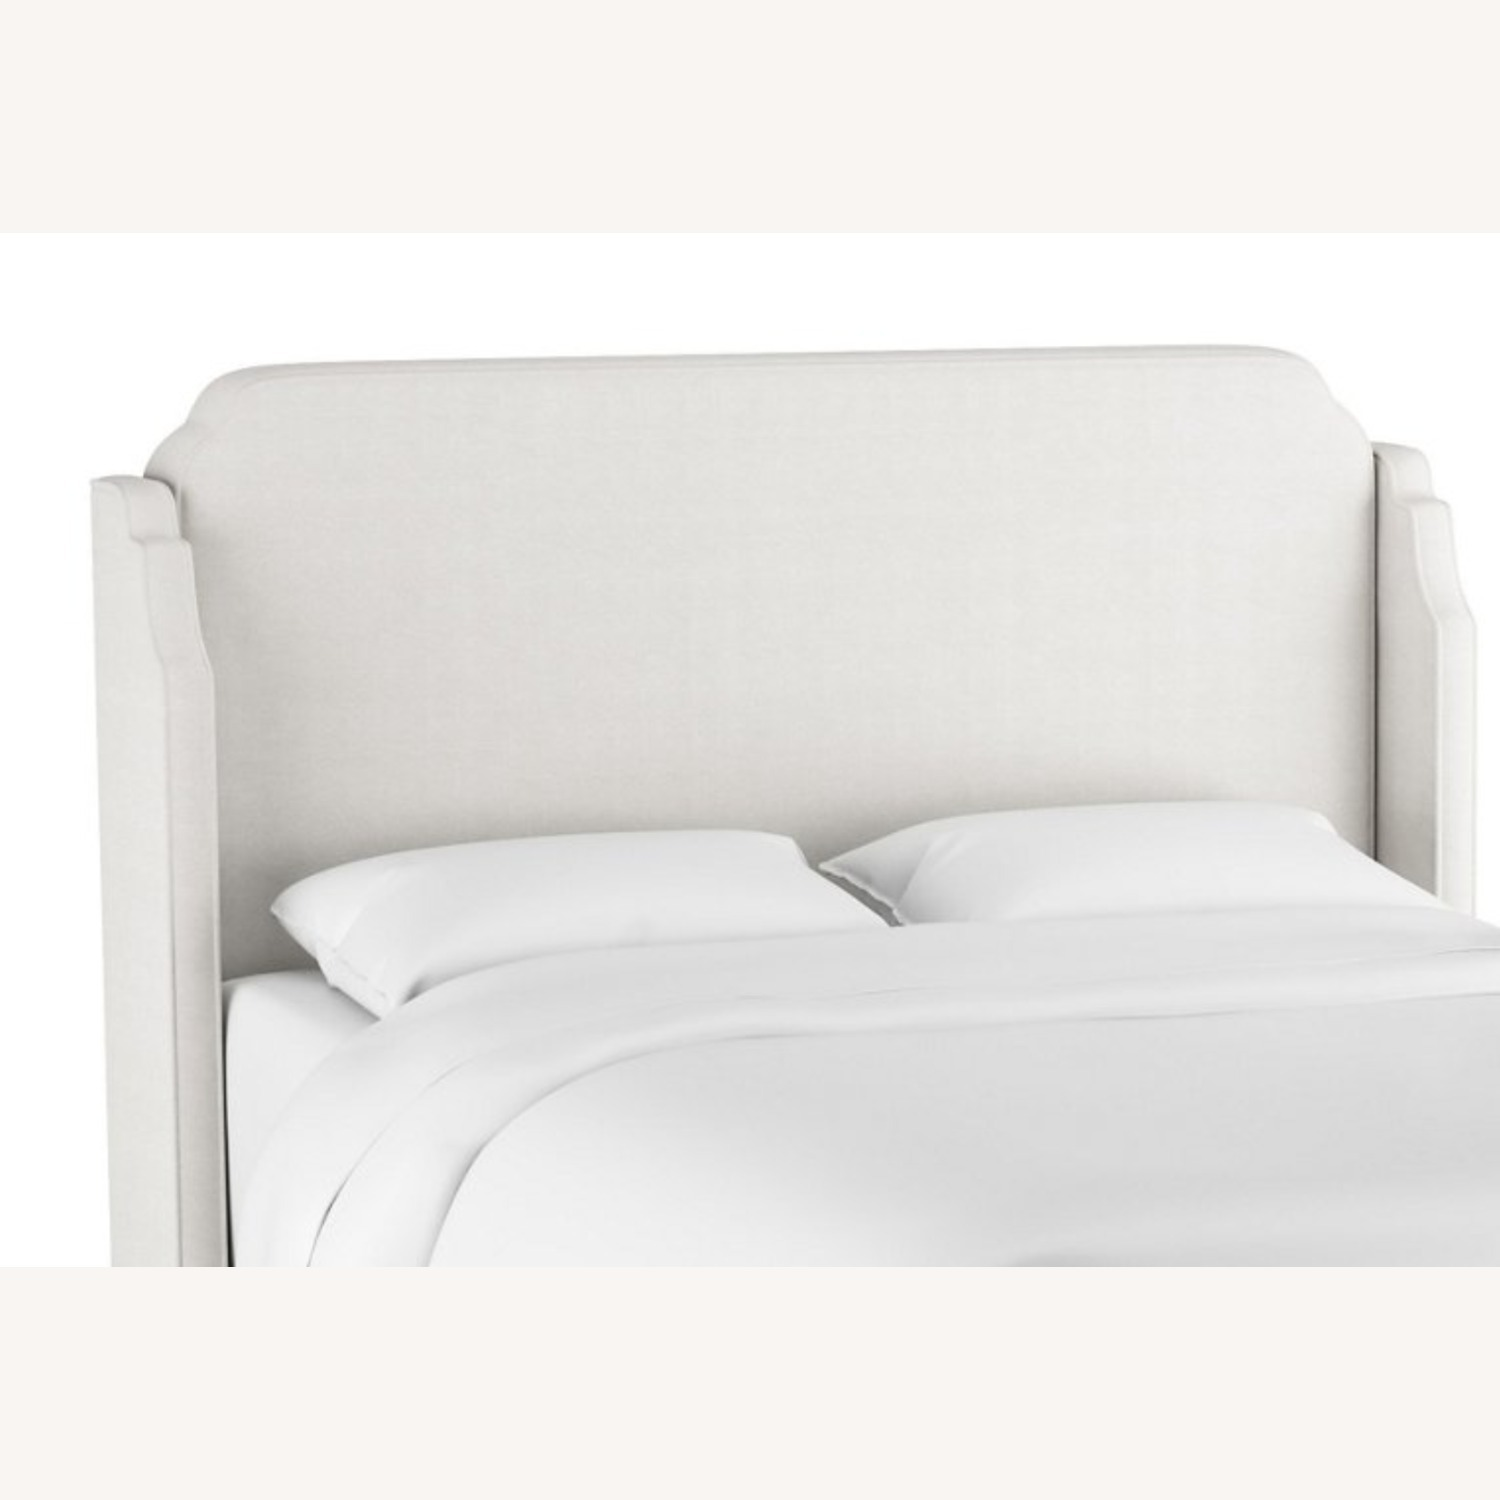 Aurora One Kings Lane Queen Bed - image-2